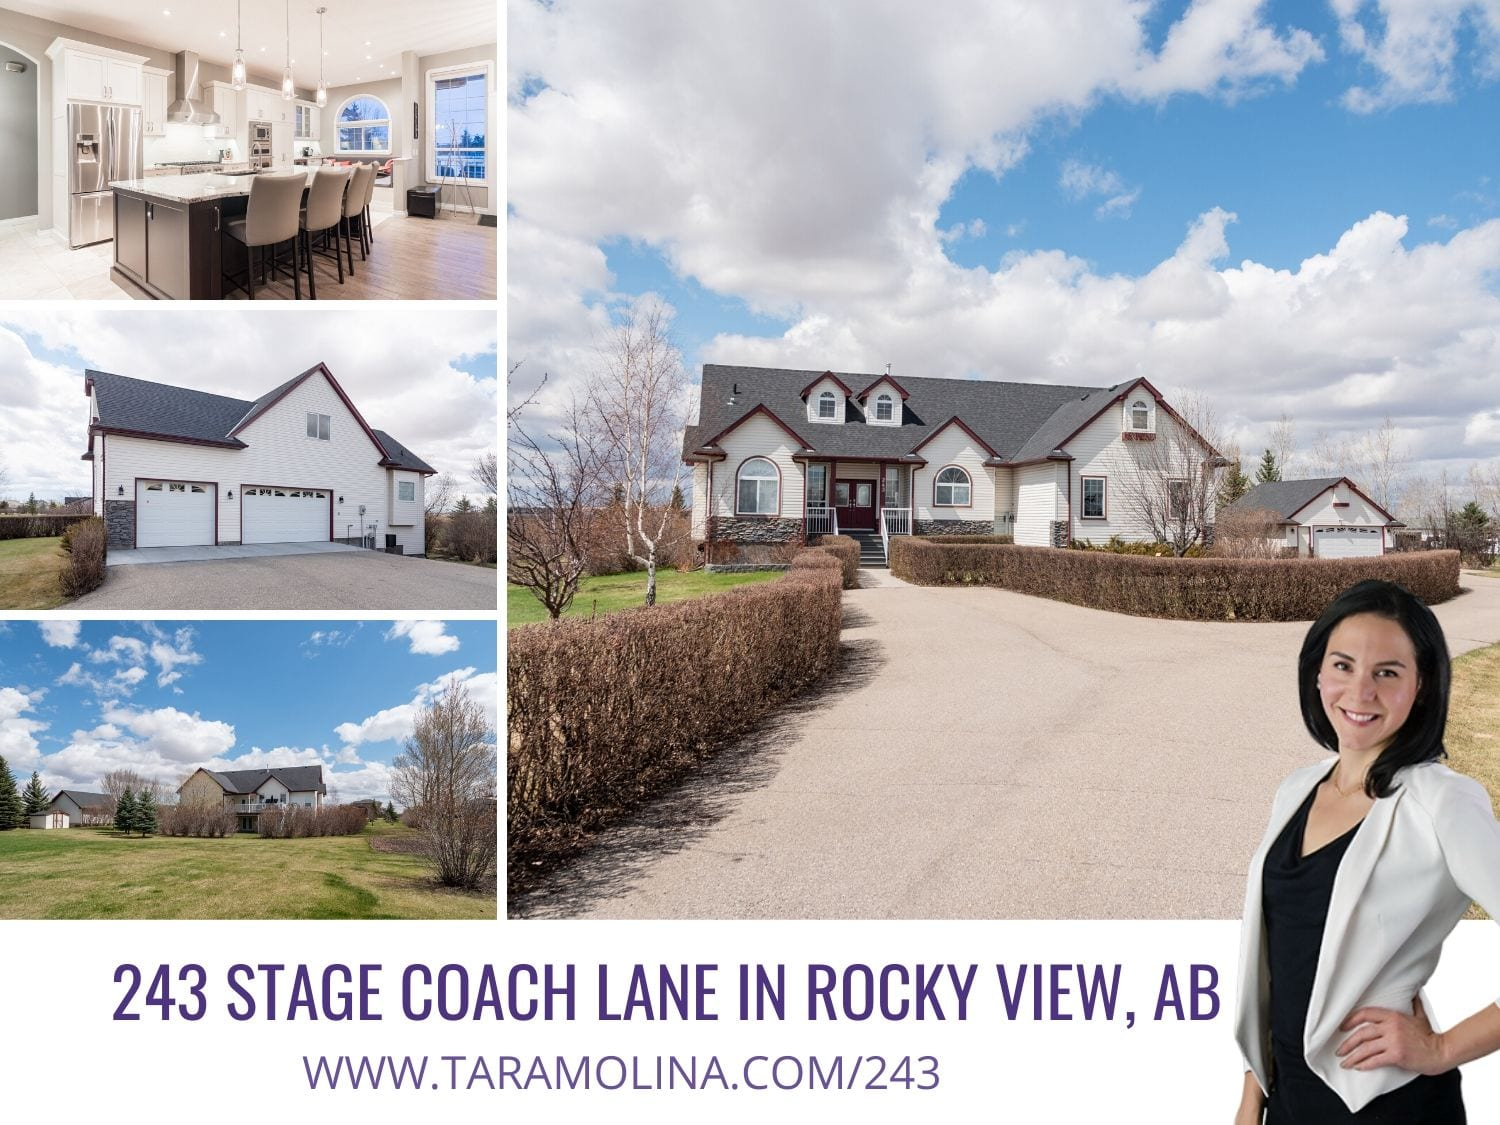 243 Stage Coach Lane in Rocky View, AB - Web Thumb